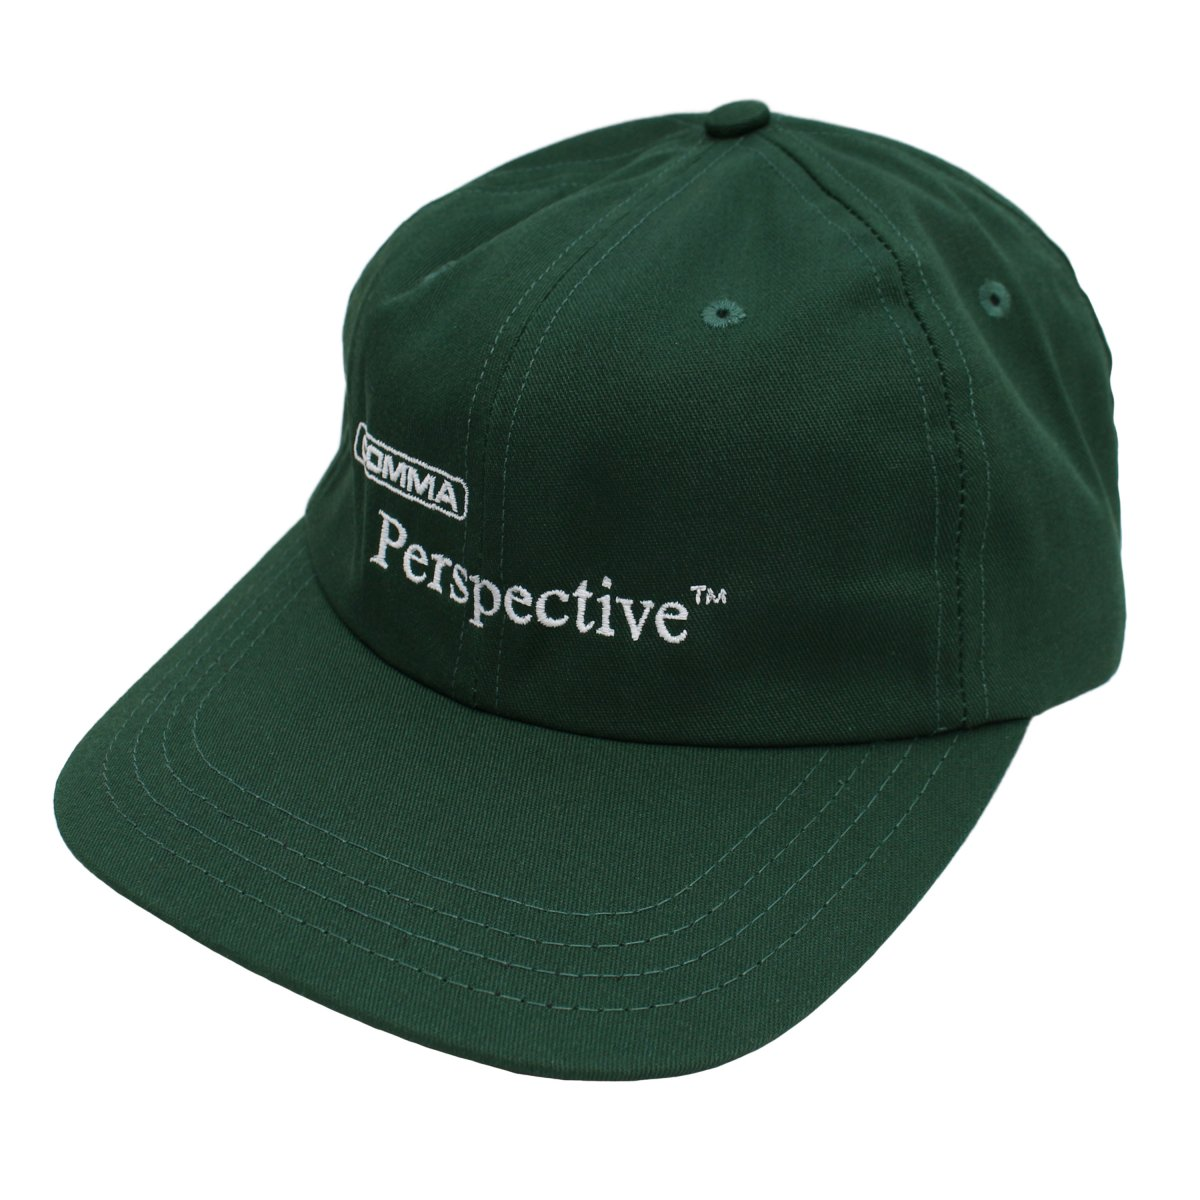 Perspective™ Green Nylon Strap Hat